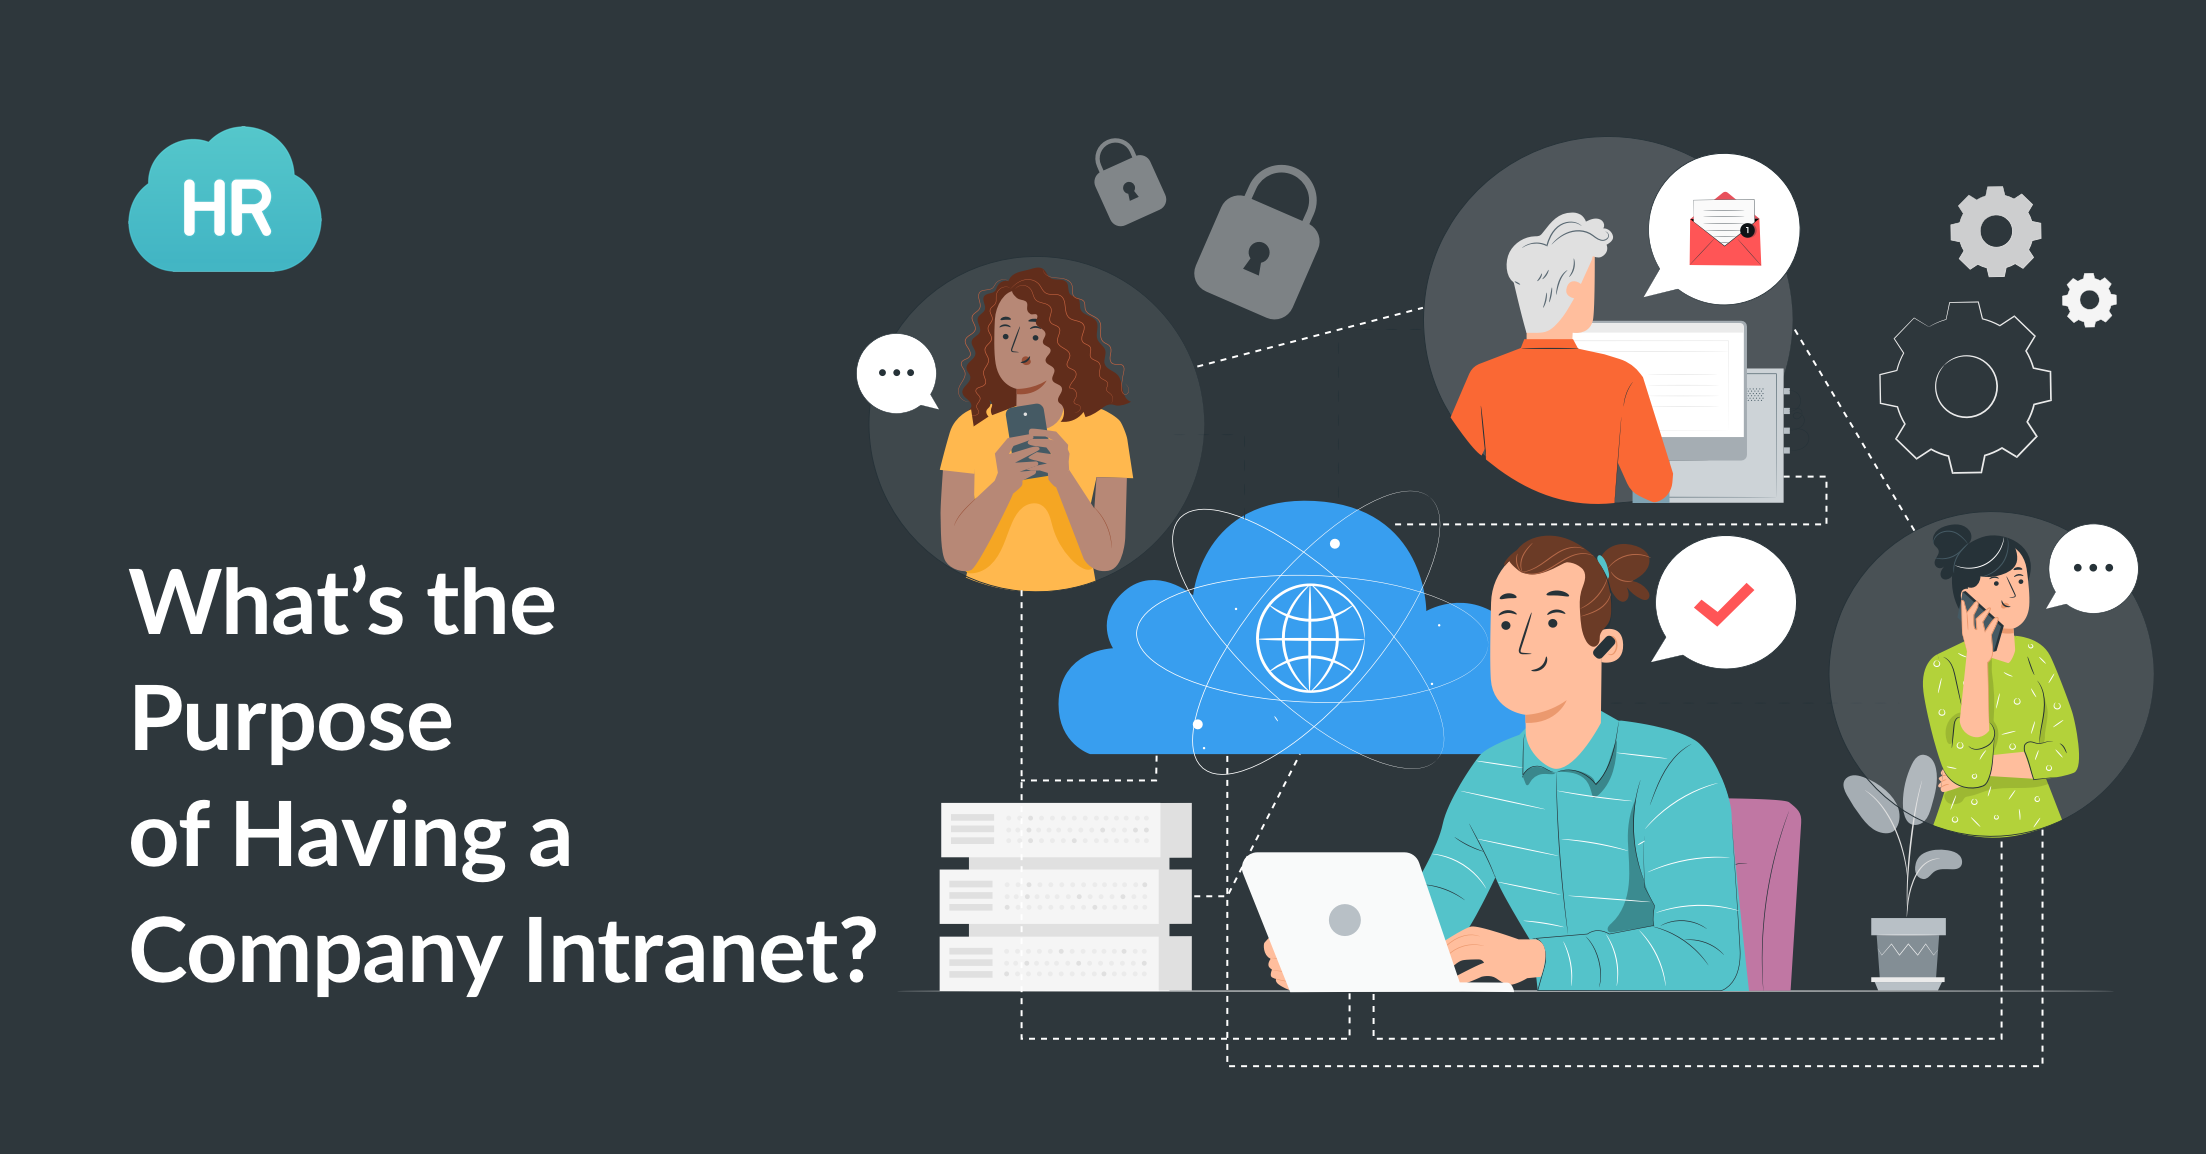 What's the Purpose of Having a Company Intranet?